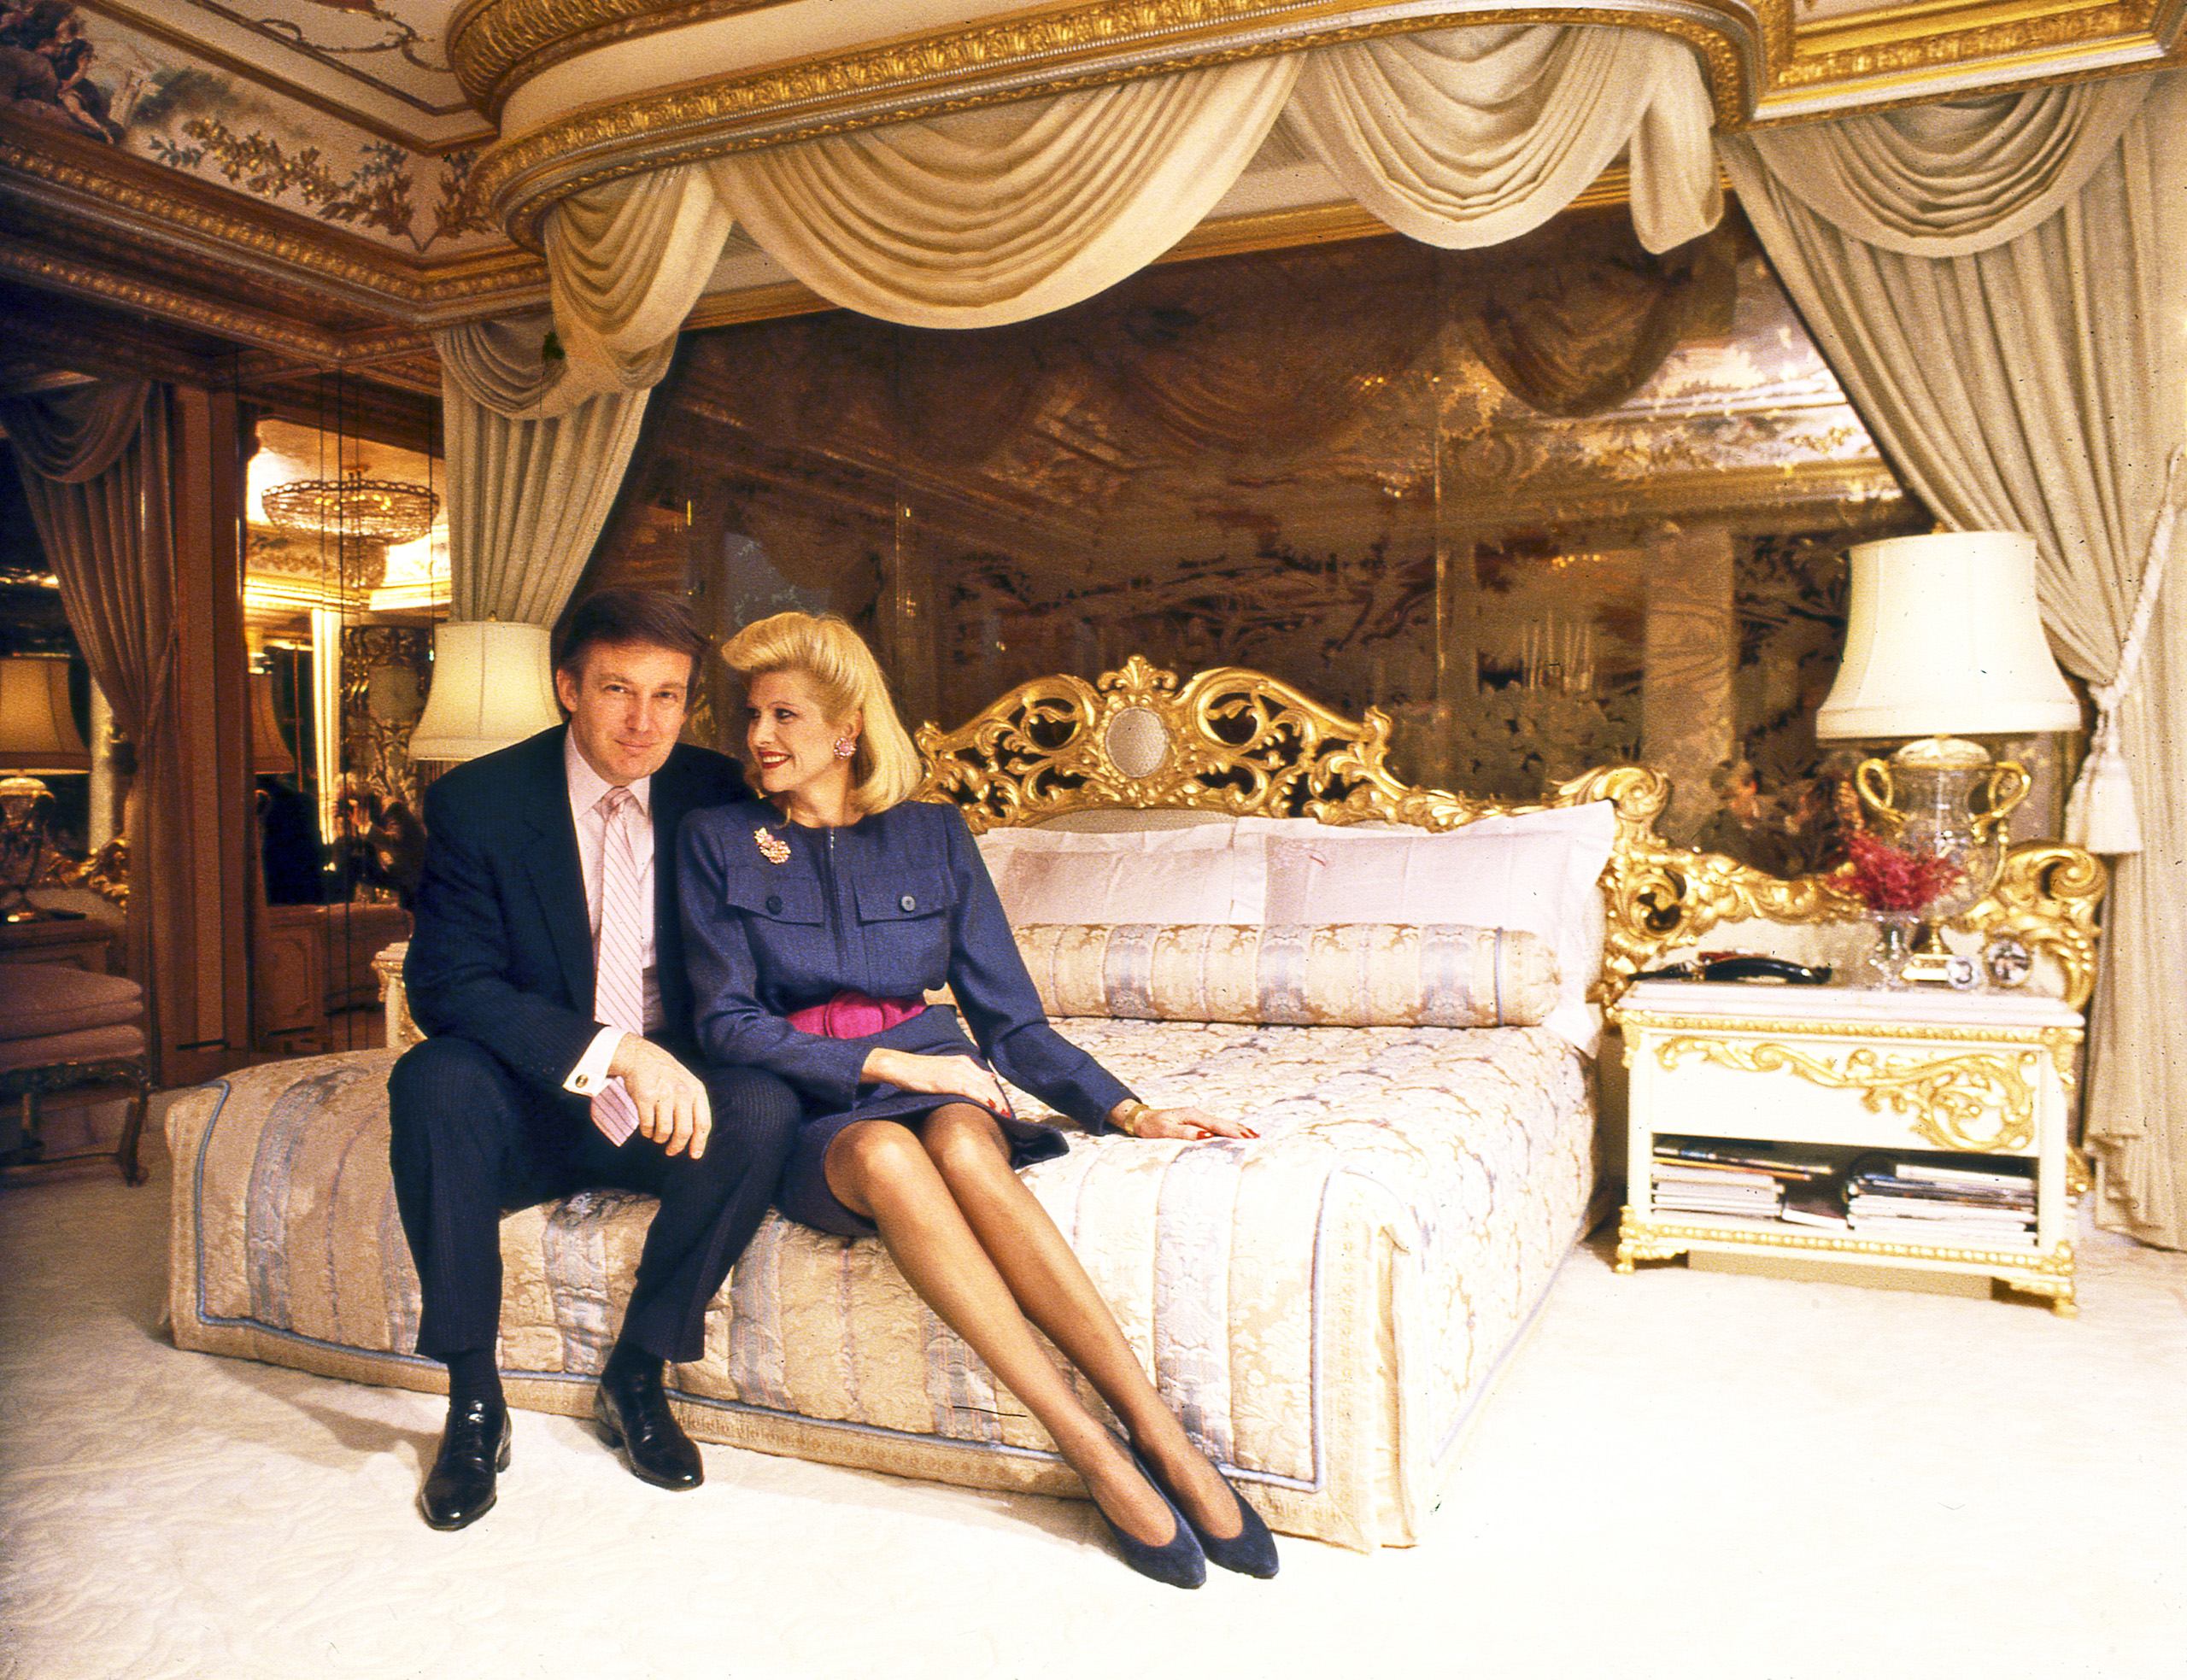 "<b>1987</b> Trump and his first wife, Ivana, in their bedroom at Trump Tower in New York City. Benson chose the location—""it tells you a lot about the people""—and wanted them to dance. ""She could dance,"" he joked, ""but he was a bit slow."""